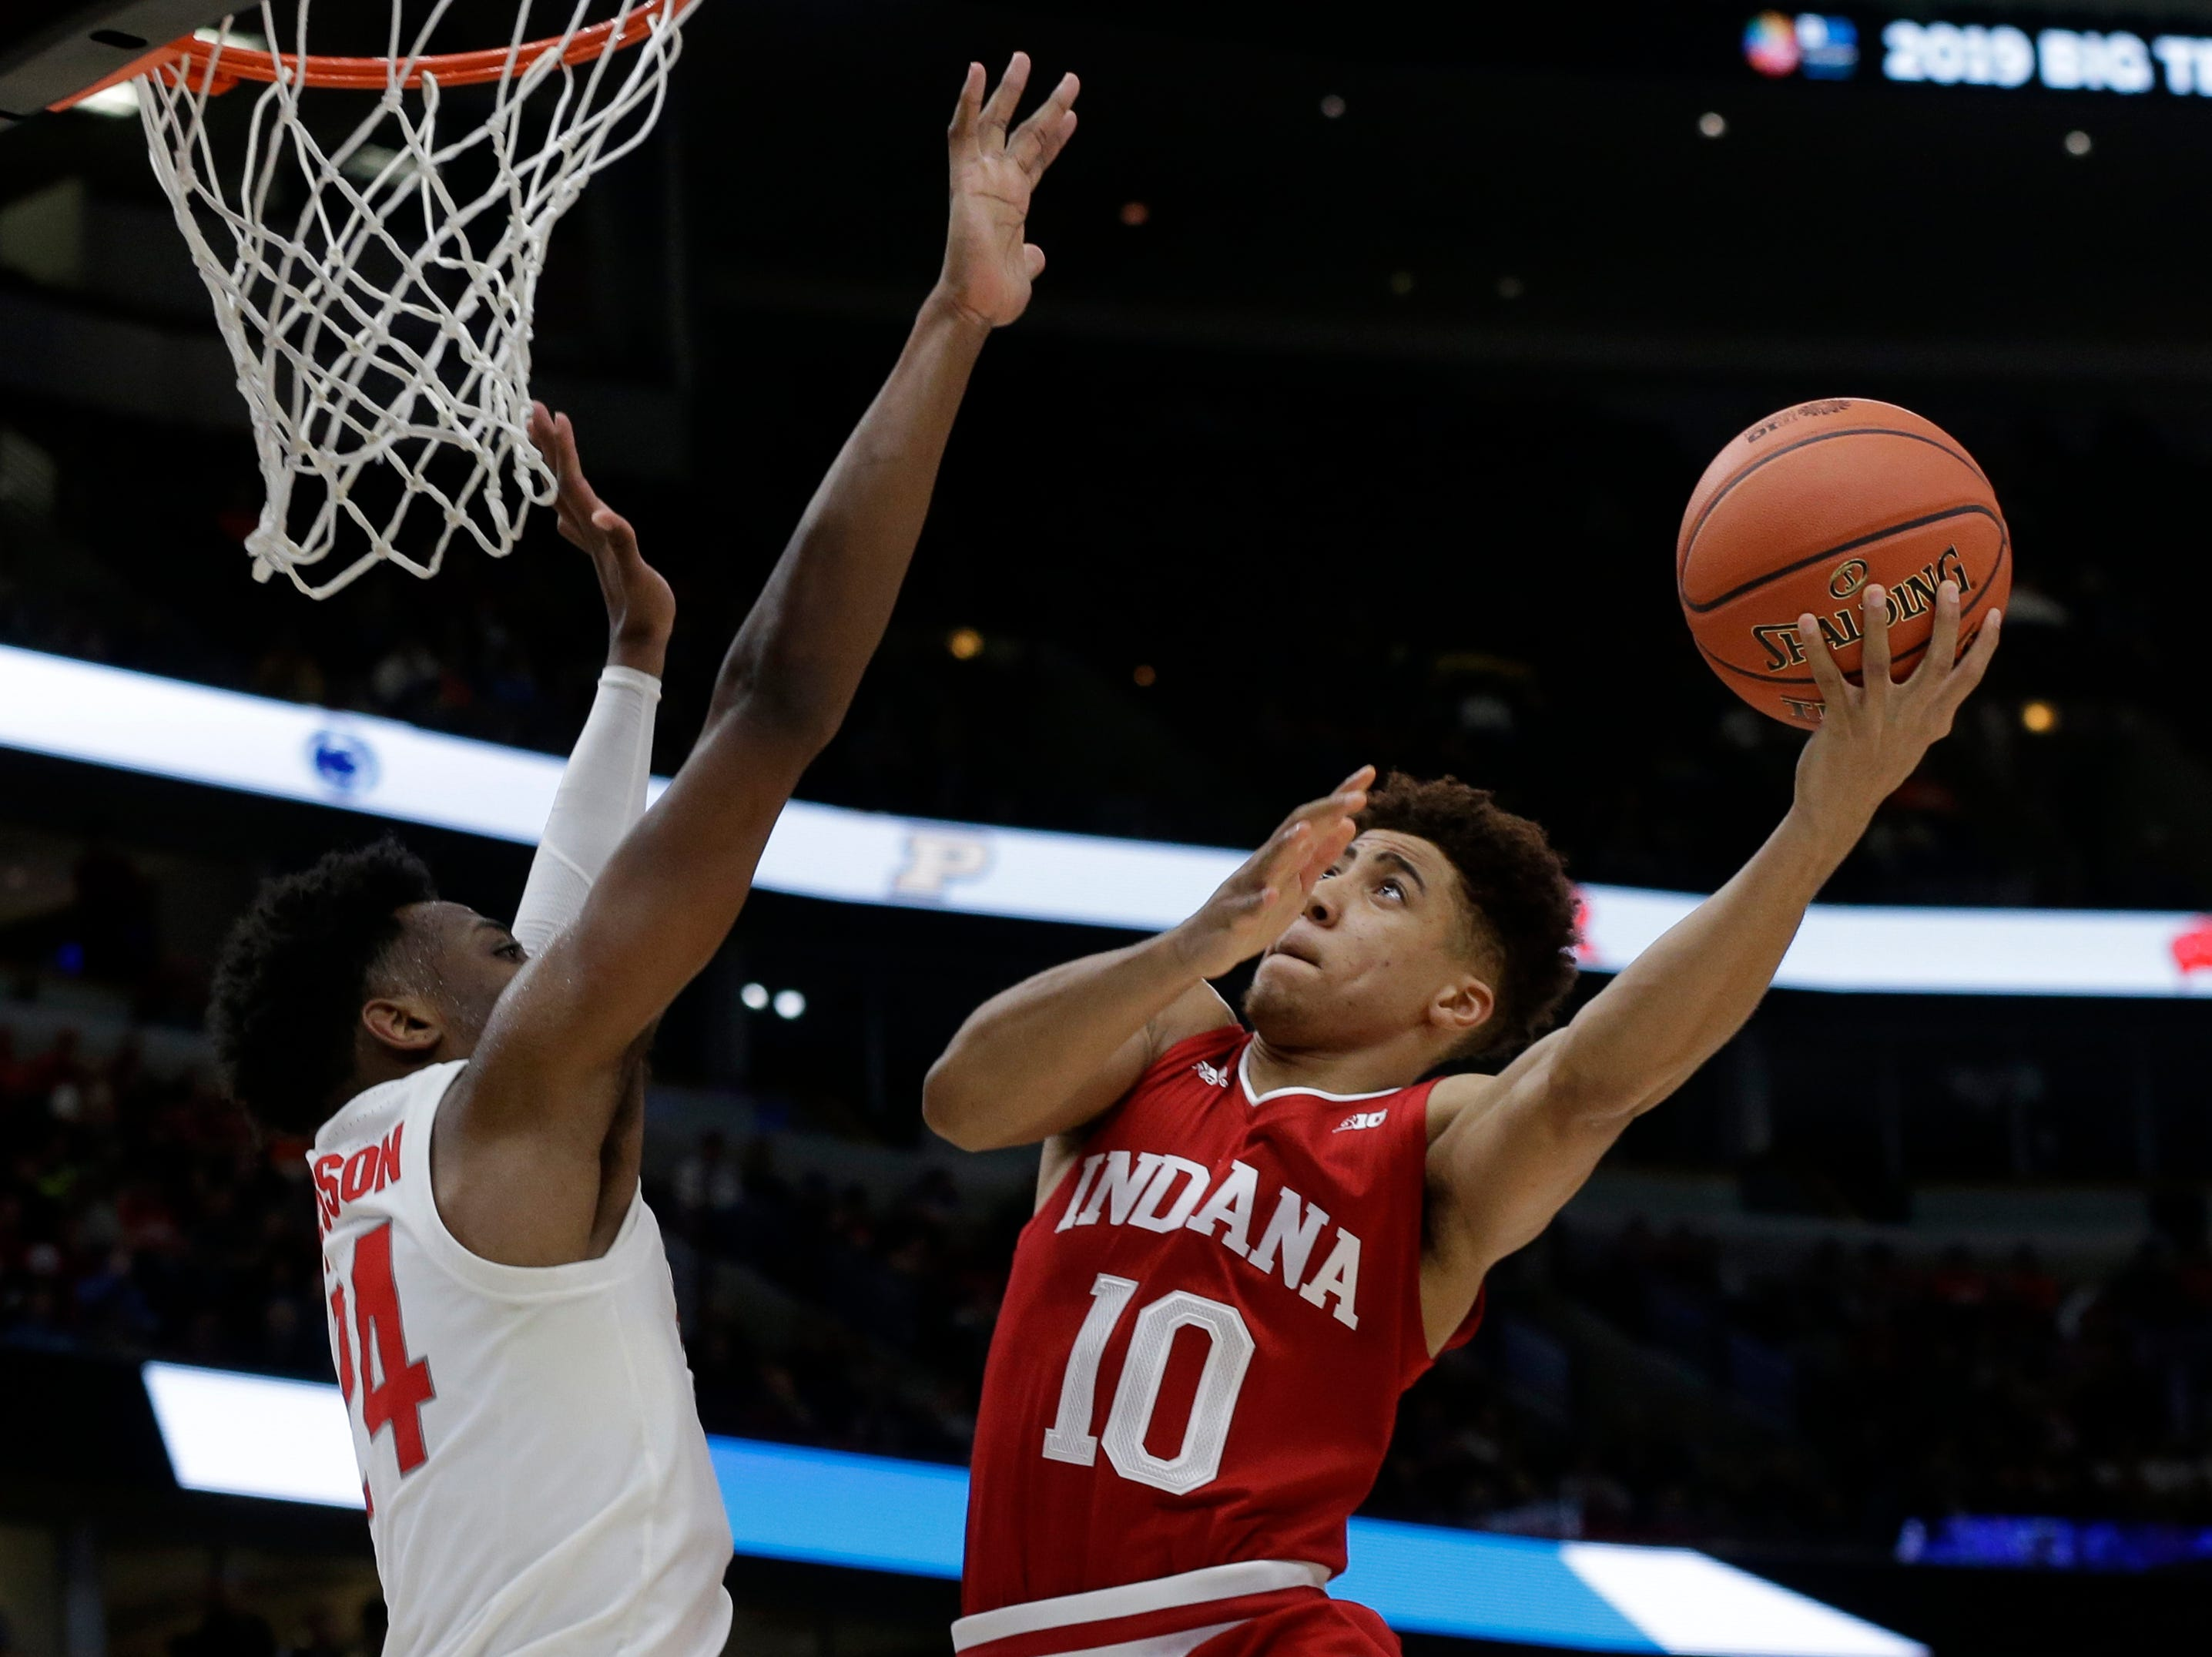 Indiana's Rob Phinisee (10) shoots against Ohio State's Andre Wesson (24) during the second half of an NCAA college basketball game in the second round of the Big Ten Conference tournament, Thursday, March 14, 2019, in Chicago. (AP Photo/Kiichiro Sato)